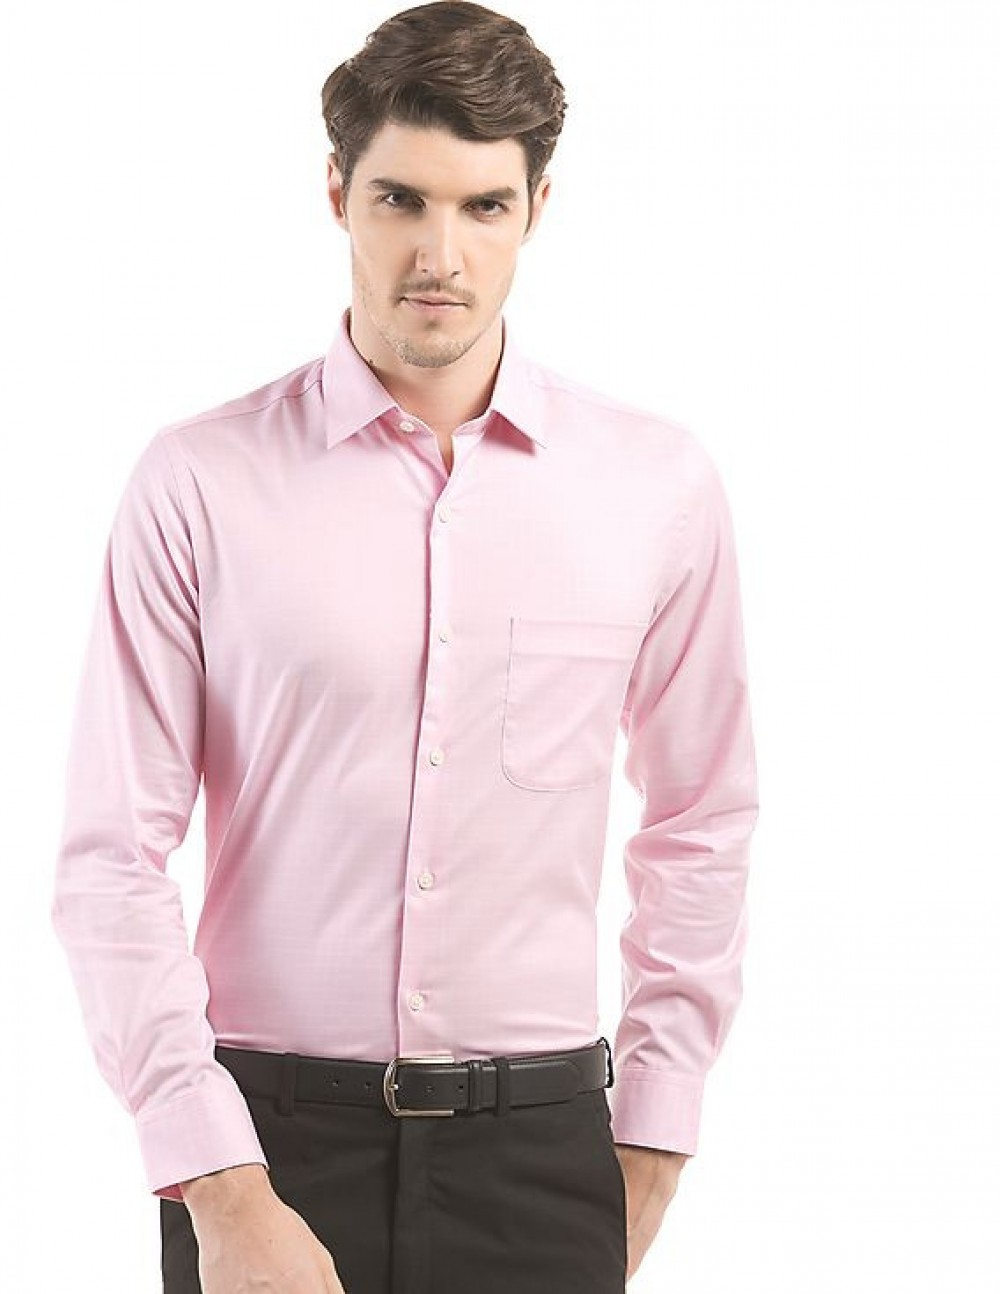 Classical Pink Looks Attractive In Formal Wear Shirt